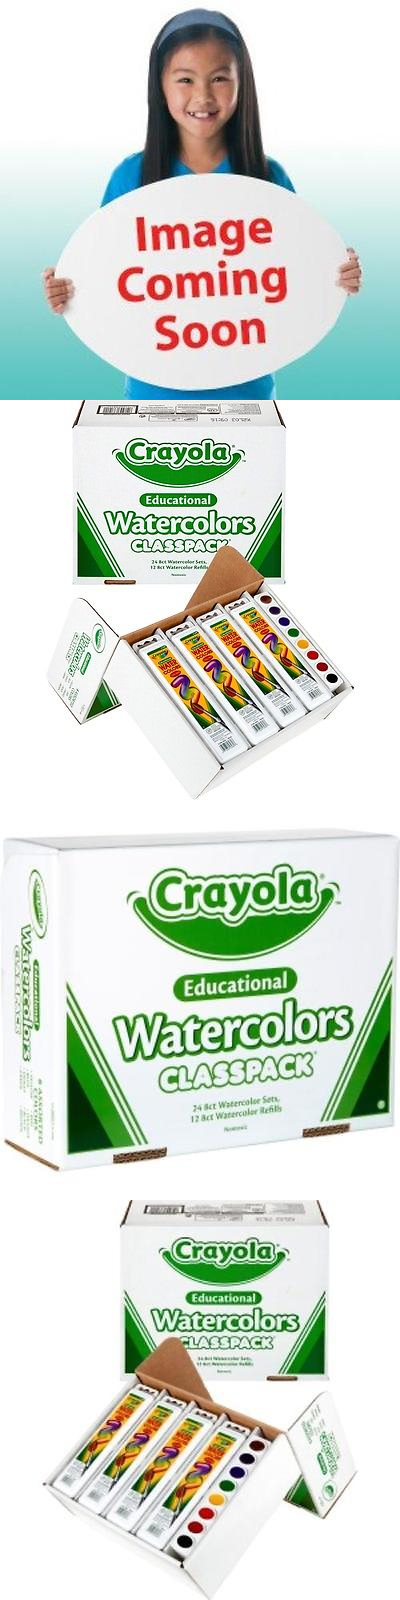 Paint Sets 134569 Crayola Educational Watercolors Classpack 36